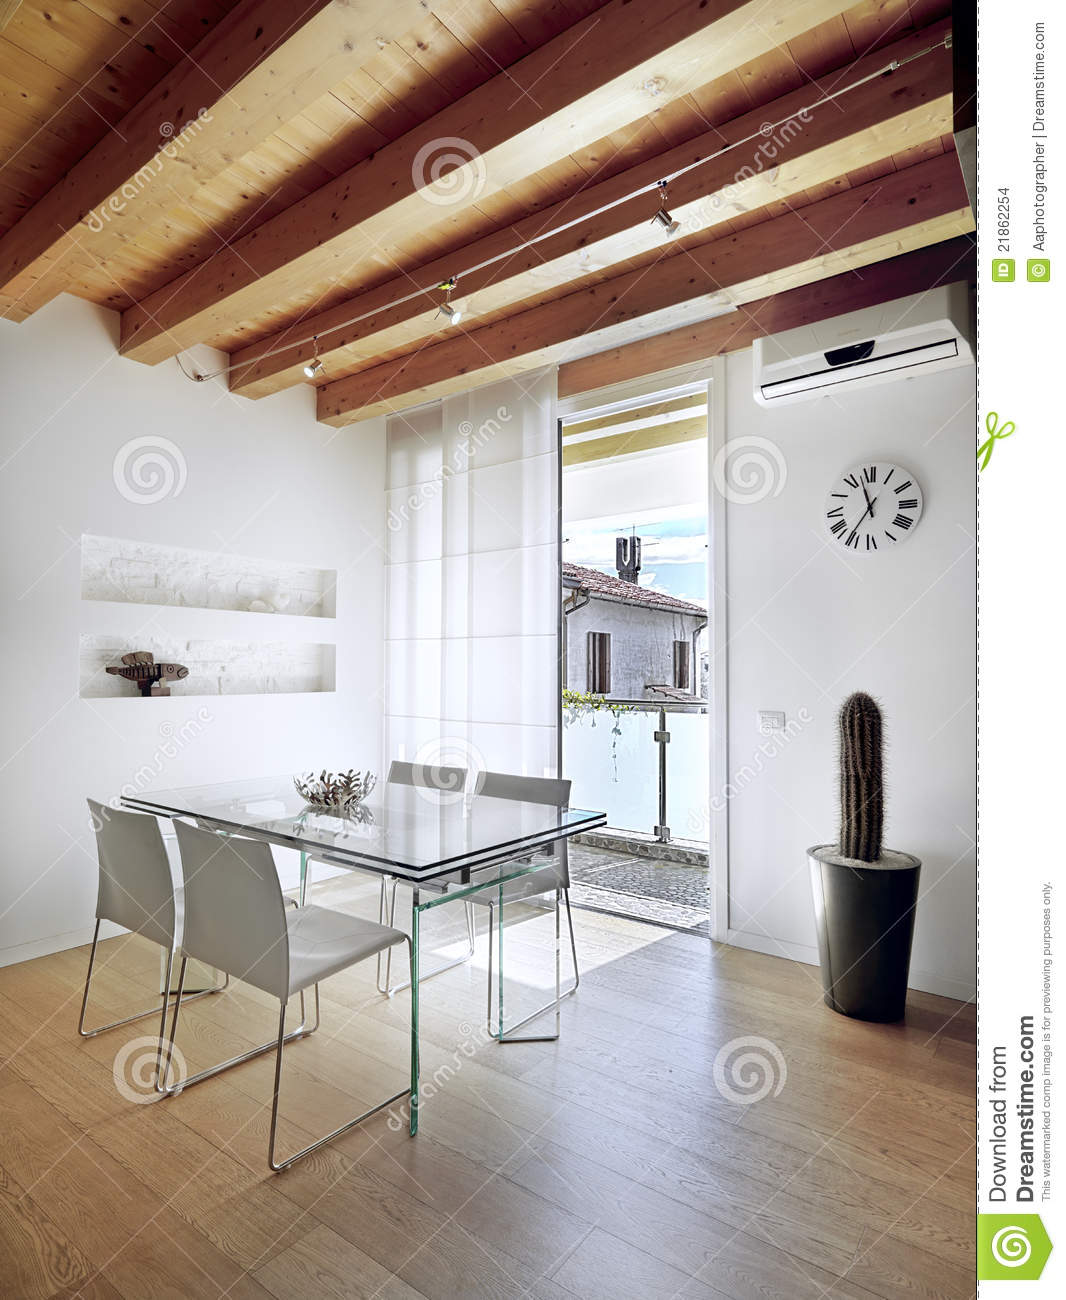 Glass Dining Table In Modern Apartment Stock Photo - Image: 21862254